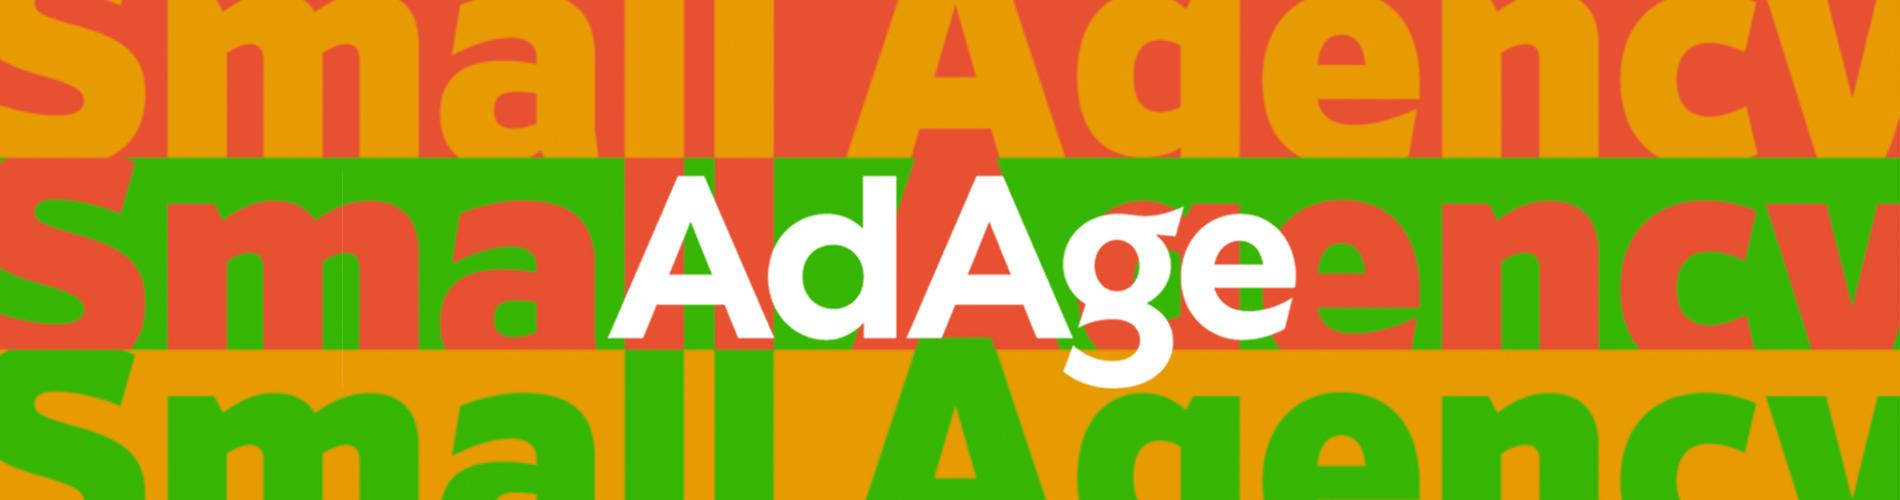 AdAge Features RP3's Quick Response to Support Giant Food